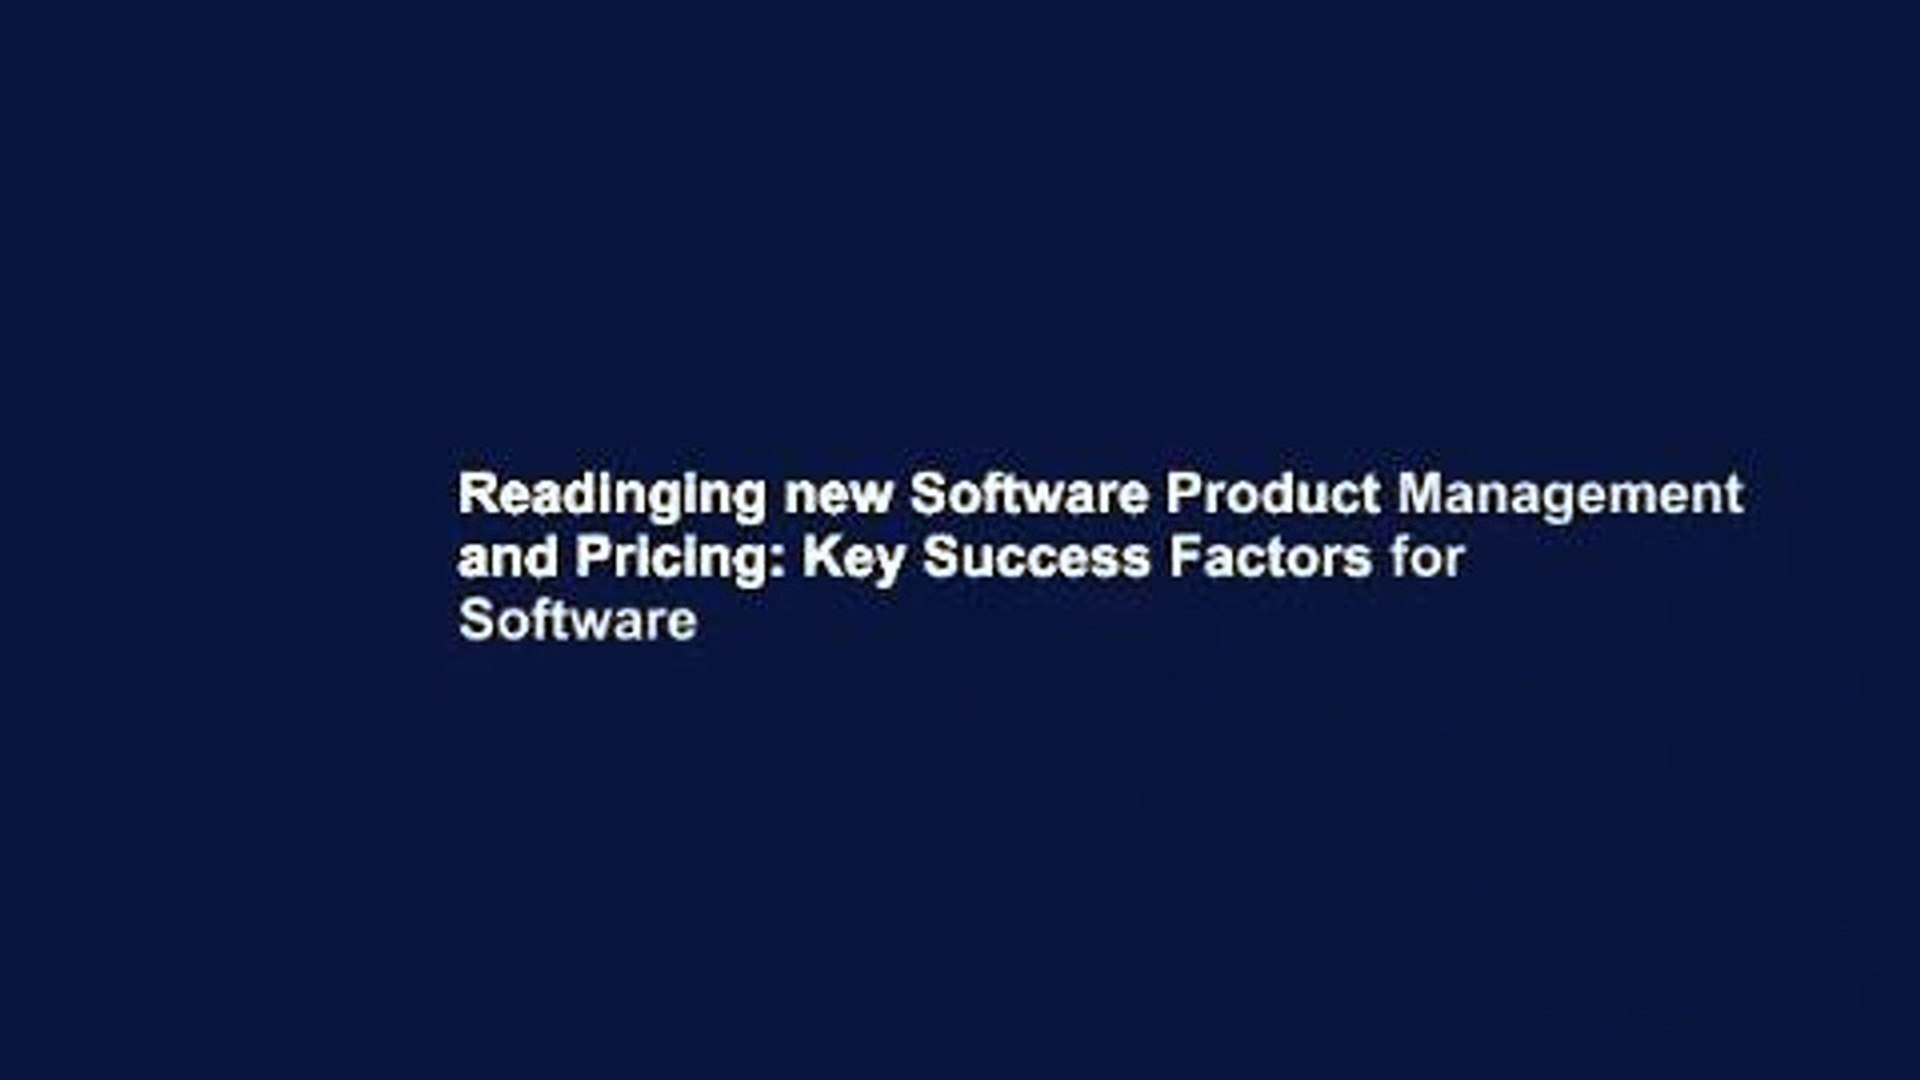 Readinging new Software Product Management and Pricing: Key Success Factors for Software